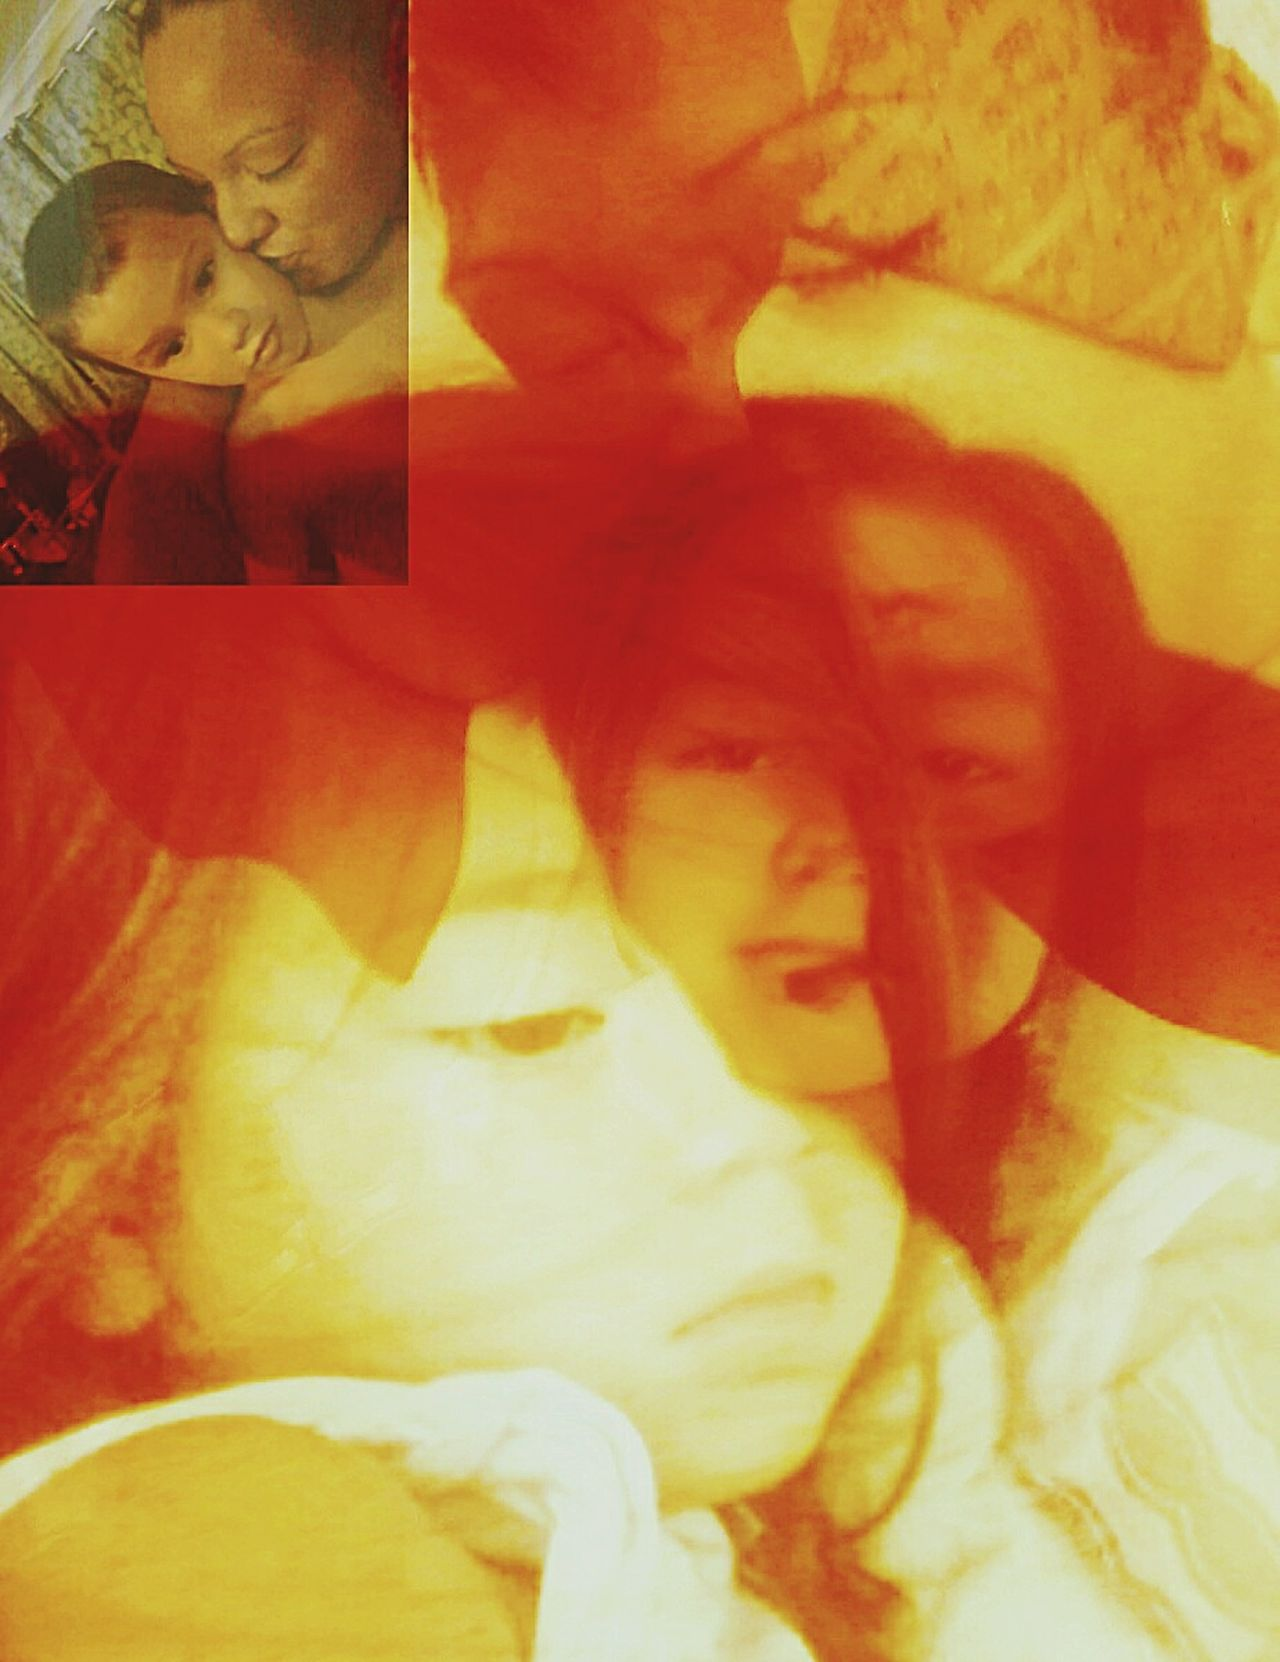 ❤Bliss❤ So In Love <3 In Love ❤ I Love My Kids Mother And Children My Daughter ❤️ My Son ❤ My World ❤ My Love❤ My Everything ❤ Kisses For My Kids I Love My Daughter's ❤❤ I Love My Son ❤ Taking Photos Blending Images Blendingphotos Blending Obssession Blending Effect My Beautiful Kids